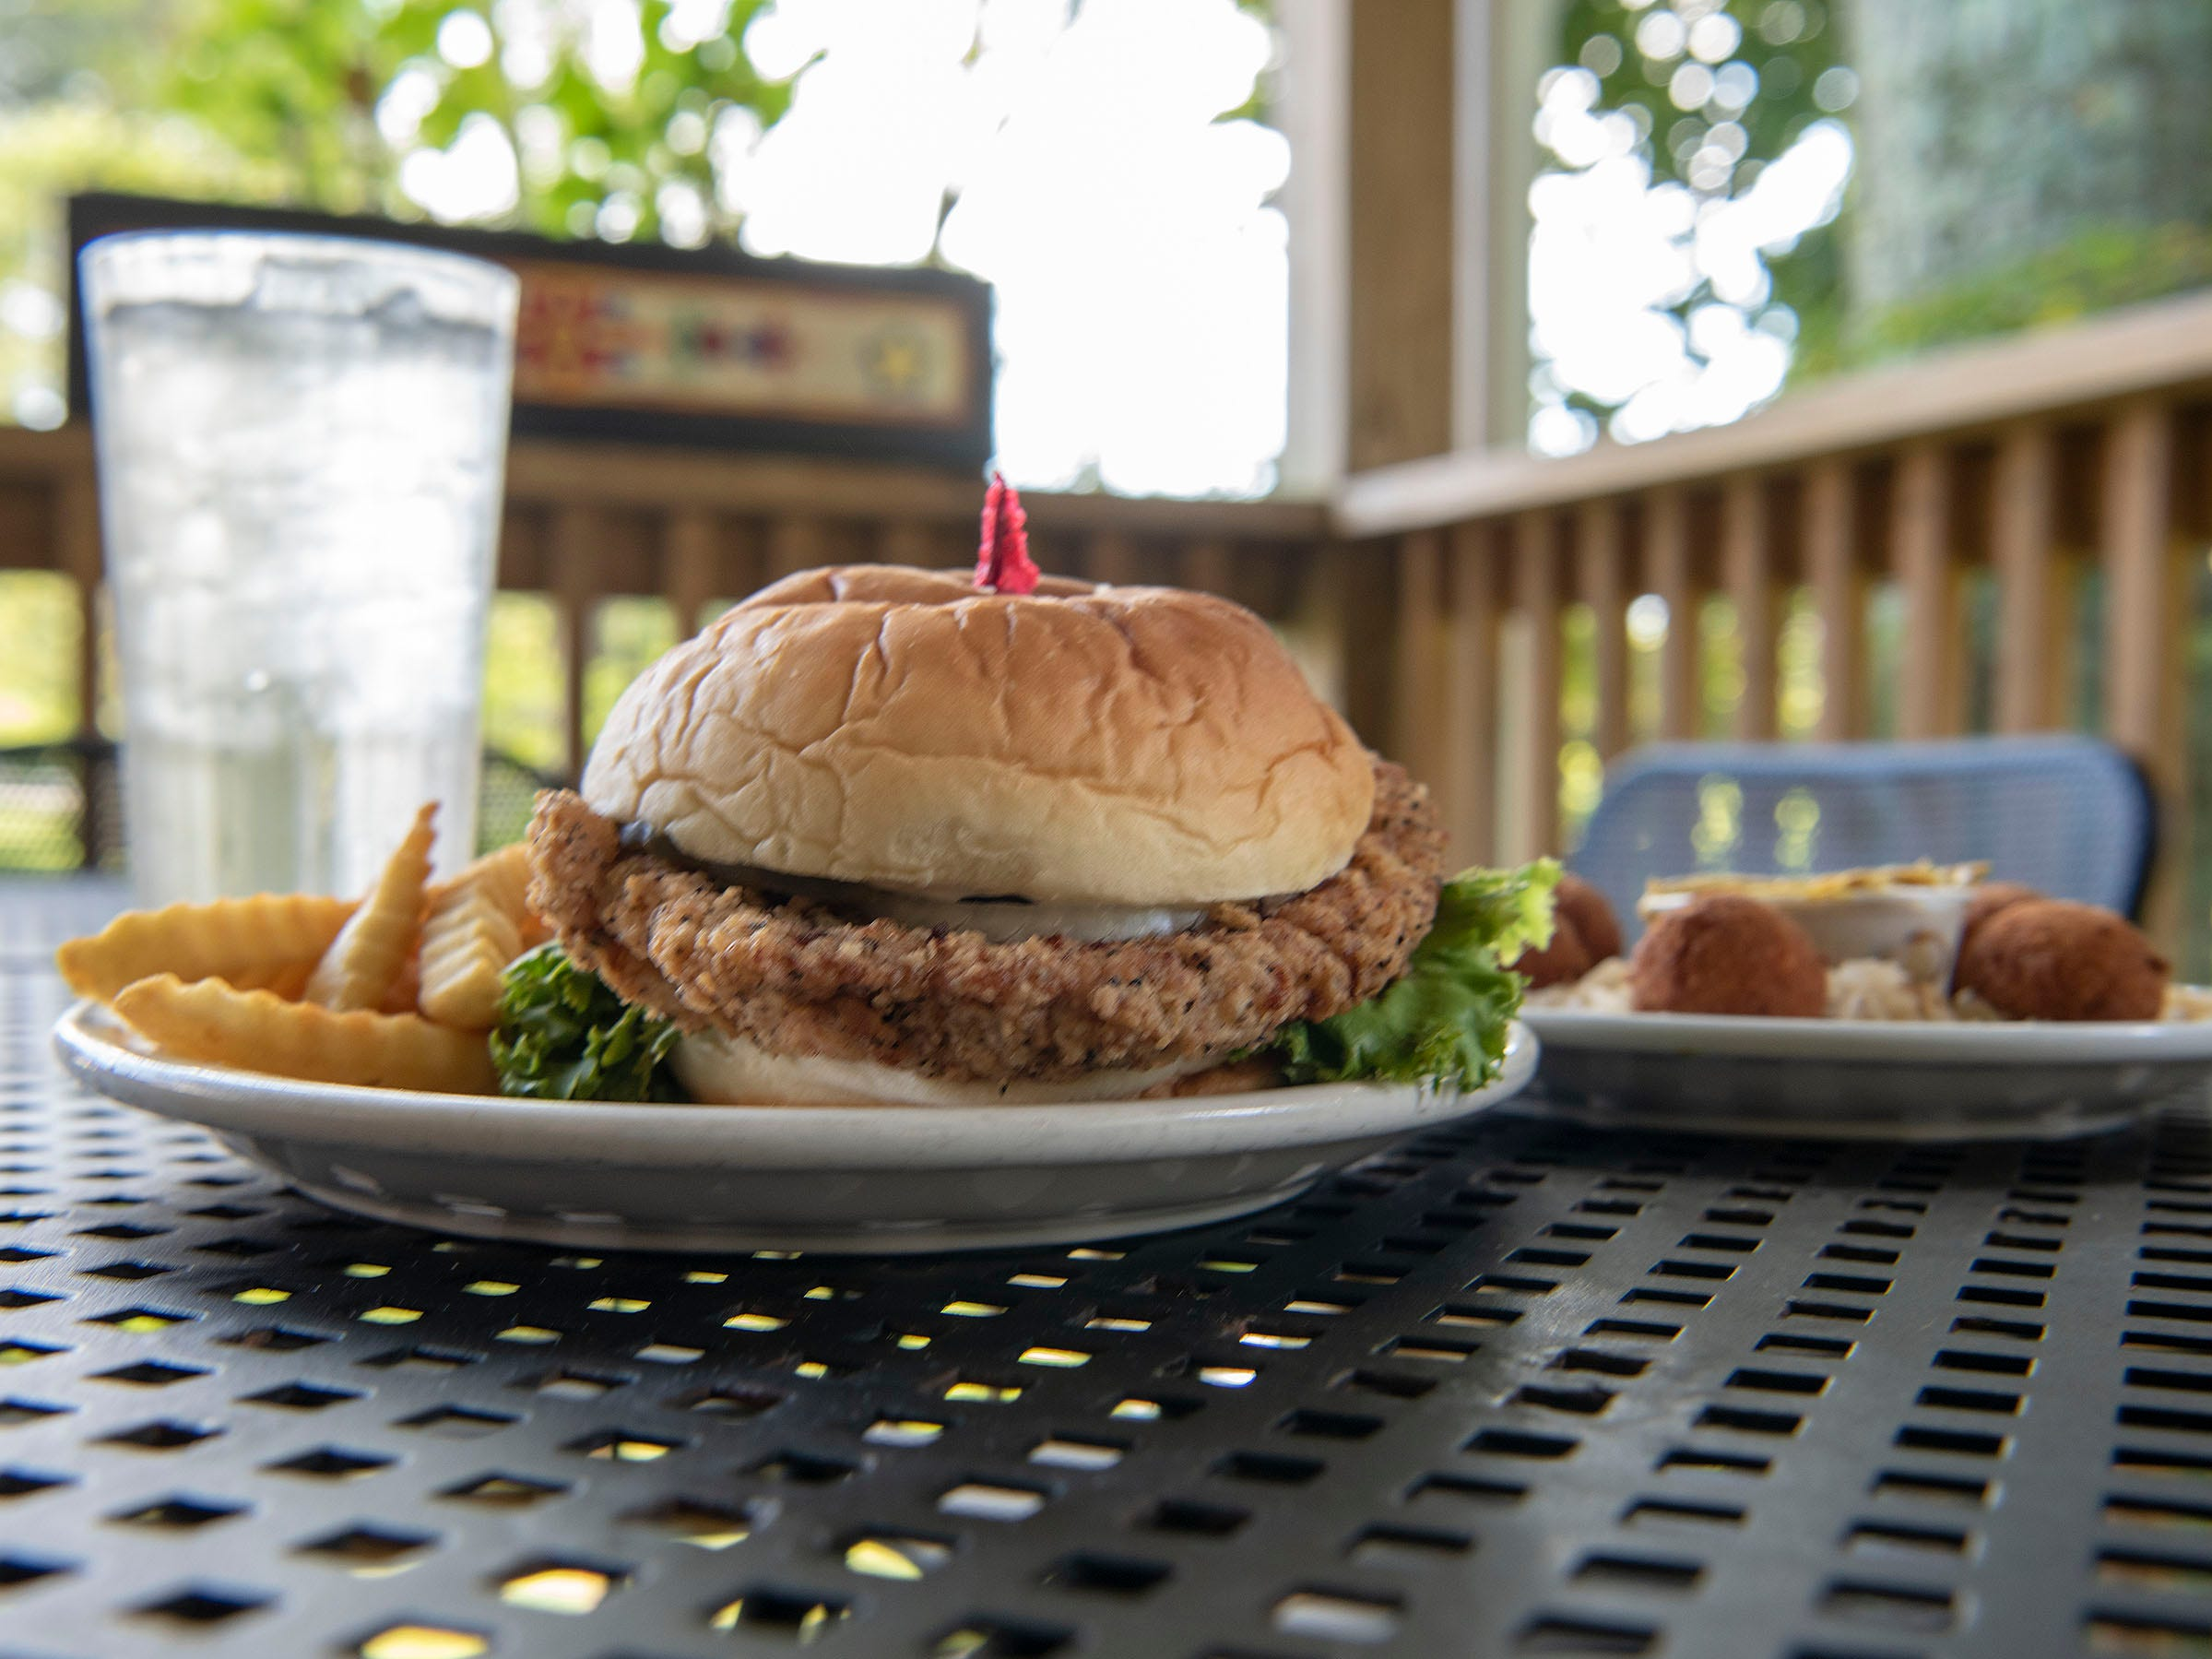 The pork tenderloin sandwich at the Brau Haus is punched up with a pleasing dose of pepper. It's featured here on the Brau Haus patio along with a serving of sauerkraut balls.